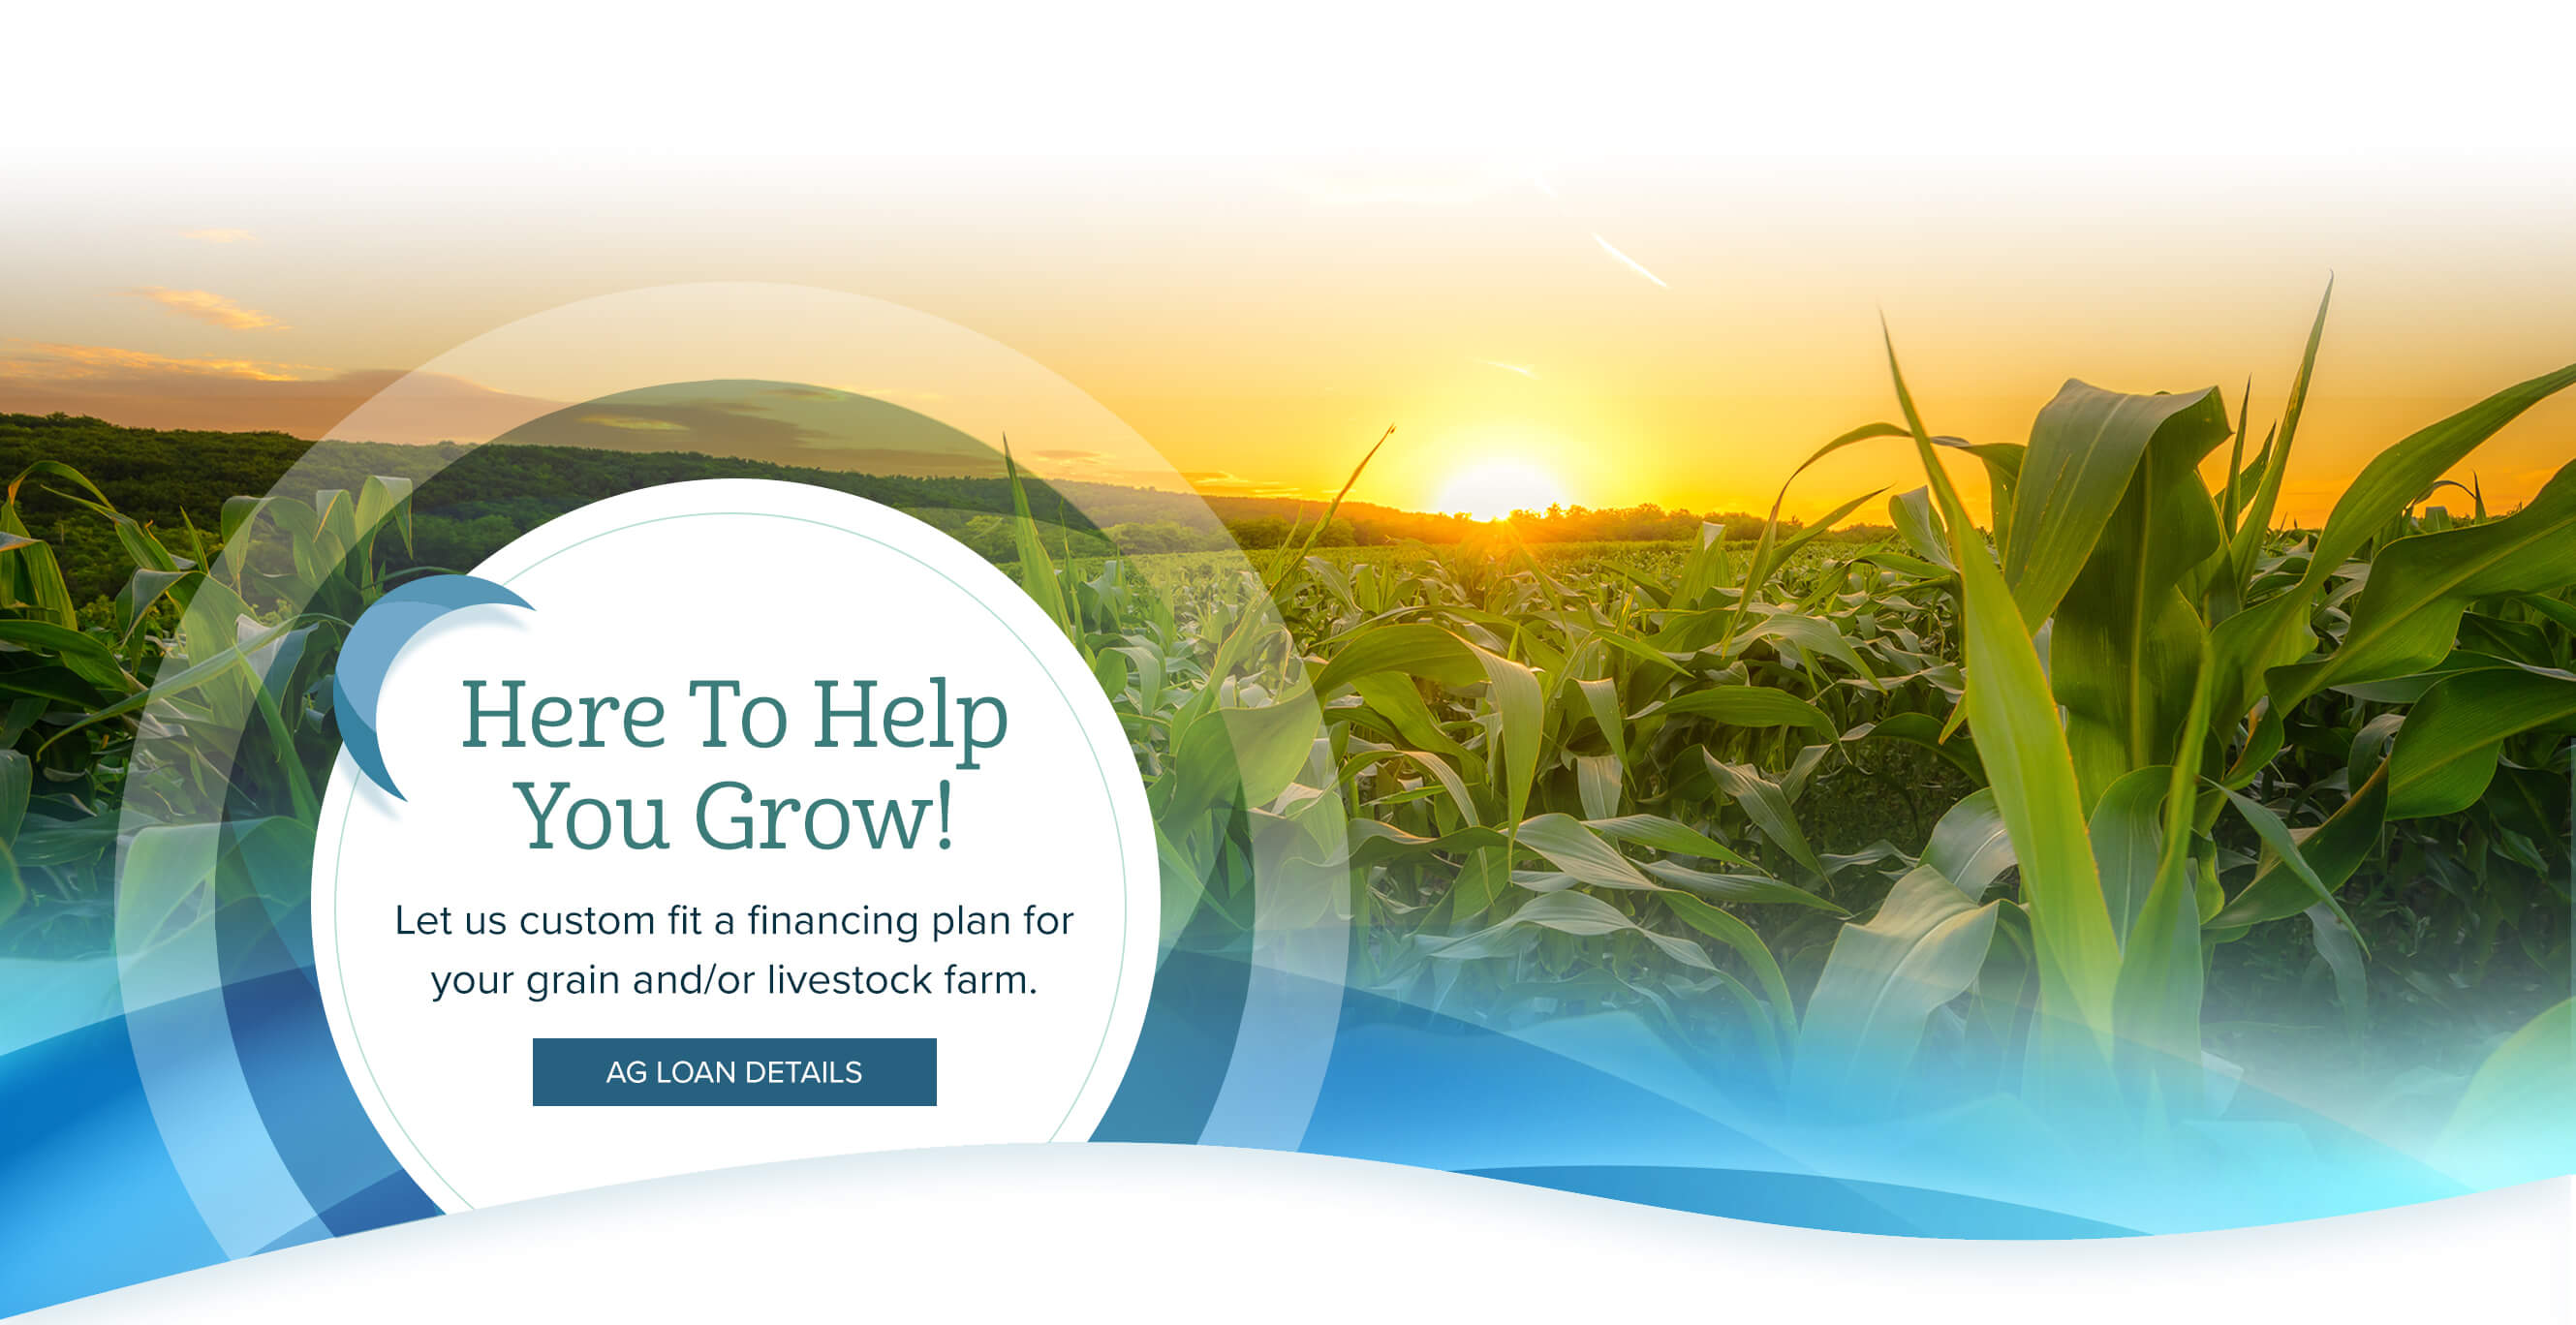 Here To Help You Grow! Let us custom fit a financing plan for your grain and/or livestock farm. Ag Loan Details.